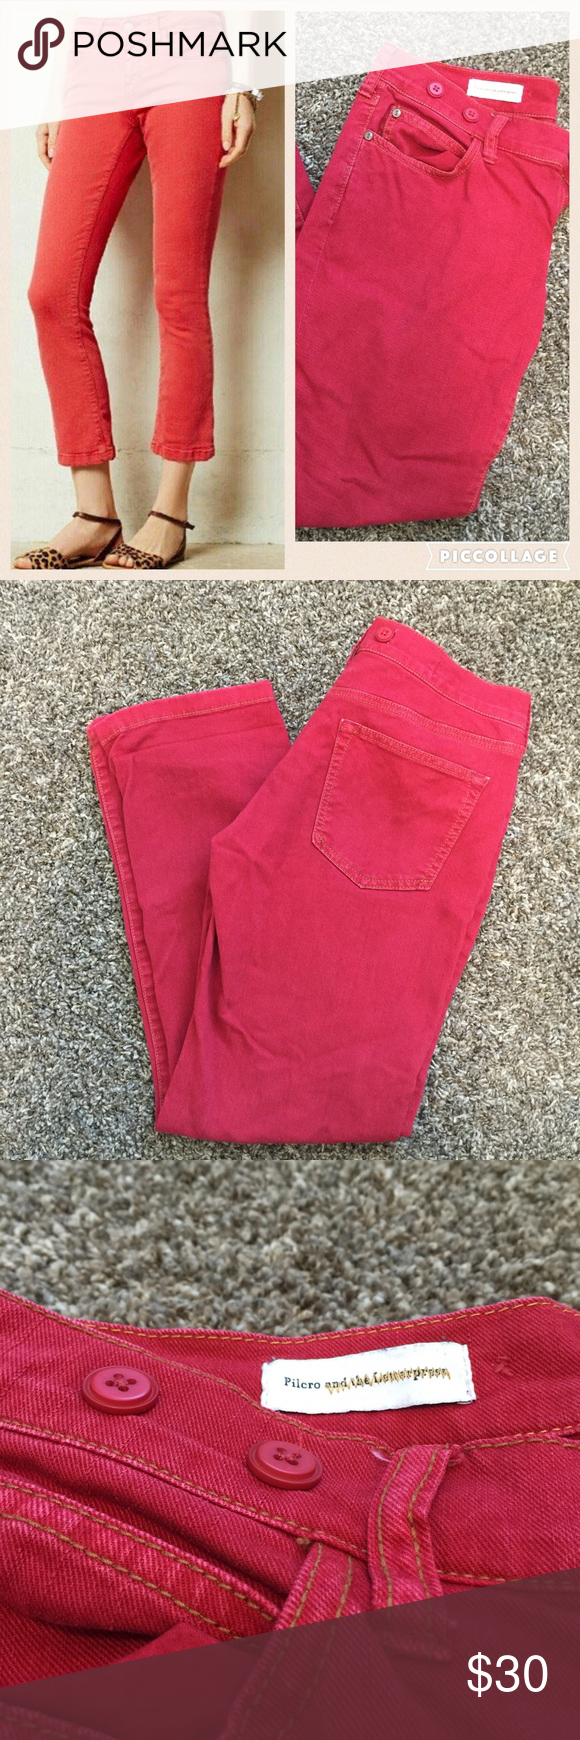 Red Pilcro Cropped Pants! ❤️ These fabulous red pants are an absolutely perfect piece to add to your wardrobe. They have a comfortable broken in look and feel so them. This pair is in excellent condition. There are no rips, stains, or tears that I can see. Feel free to ask any questions or make a reasonable offer! Anthropologie Pants Ankle & Cropped